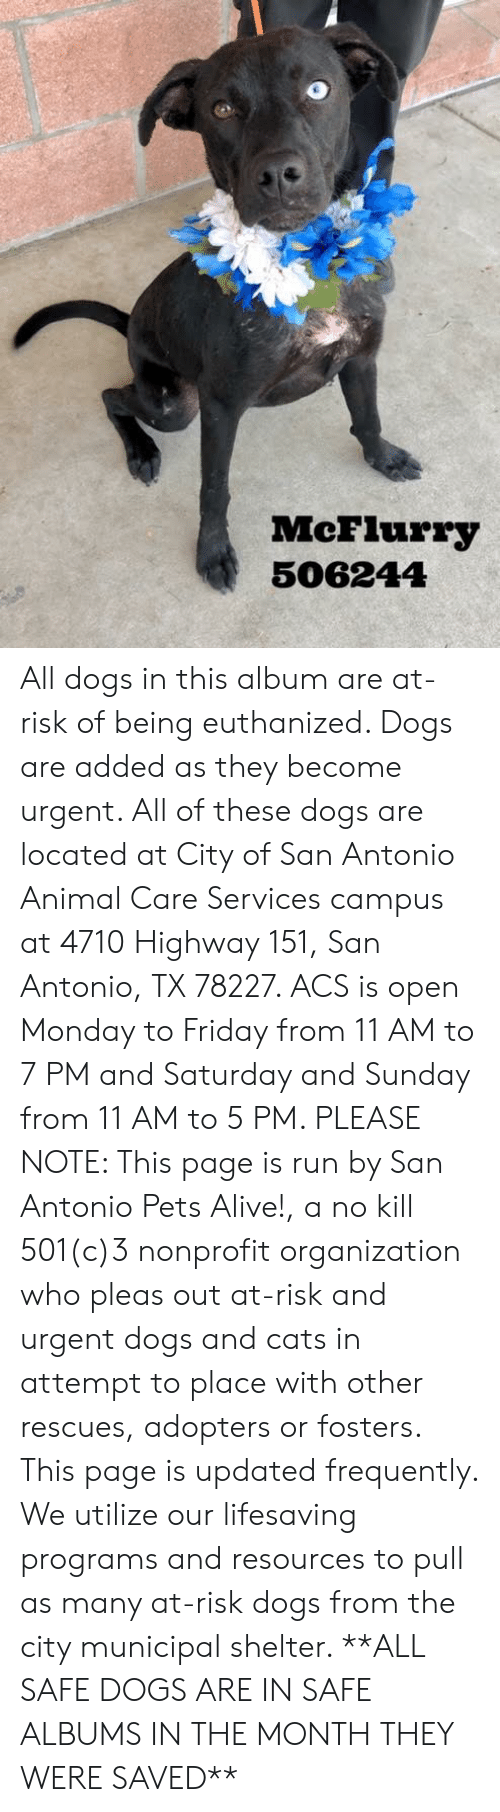 Alive, Cats, and Dogs: McFlurry  506244 All dogs in this album are at-risk of being euthanized.  Dogs are added as they become urgent.  All of these dogs are located at City of San Antonio Animal Care Services campus at 4710 Highway 151, San Antonio, TX 78227. ACS is open Monday to Friday from 11 AM to 7 PM and Saturday and Sunday from 11 AM to 5 PM.   PLEASE NOTE: This page is run by San Antonio Pets Alive!, a no kill 501(c)3 nonprofit organization who pleas out at-risk and urgent dogs and cats in attempt to place with other rescues, adopters or fosters.   This page is updated frequently.  We utilize our lifesaving programs and resources to pull as many at-risk dogs from the city municipal shelter. **ALL SAFE DOGS ARE IN SAFE ALBUMS IN THE MONTH THEY WERE SAVED**